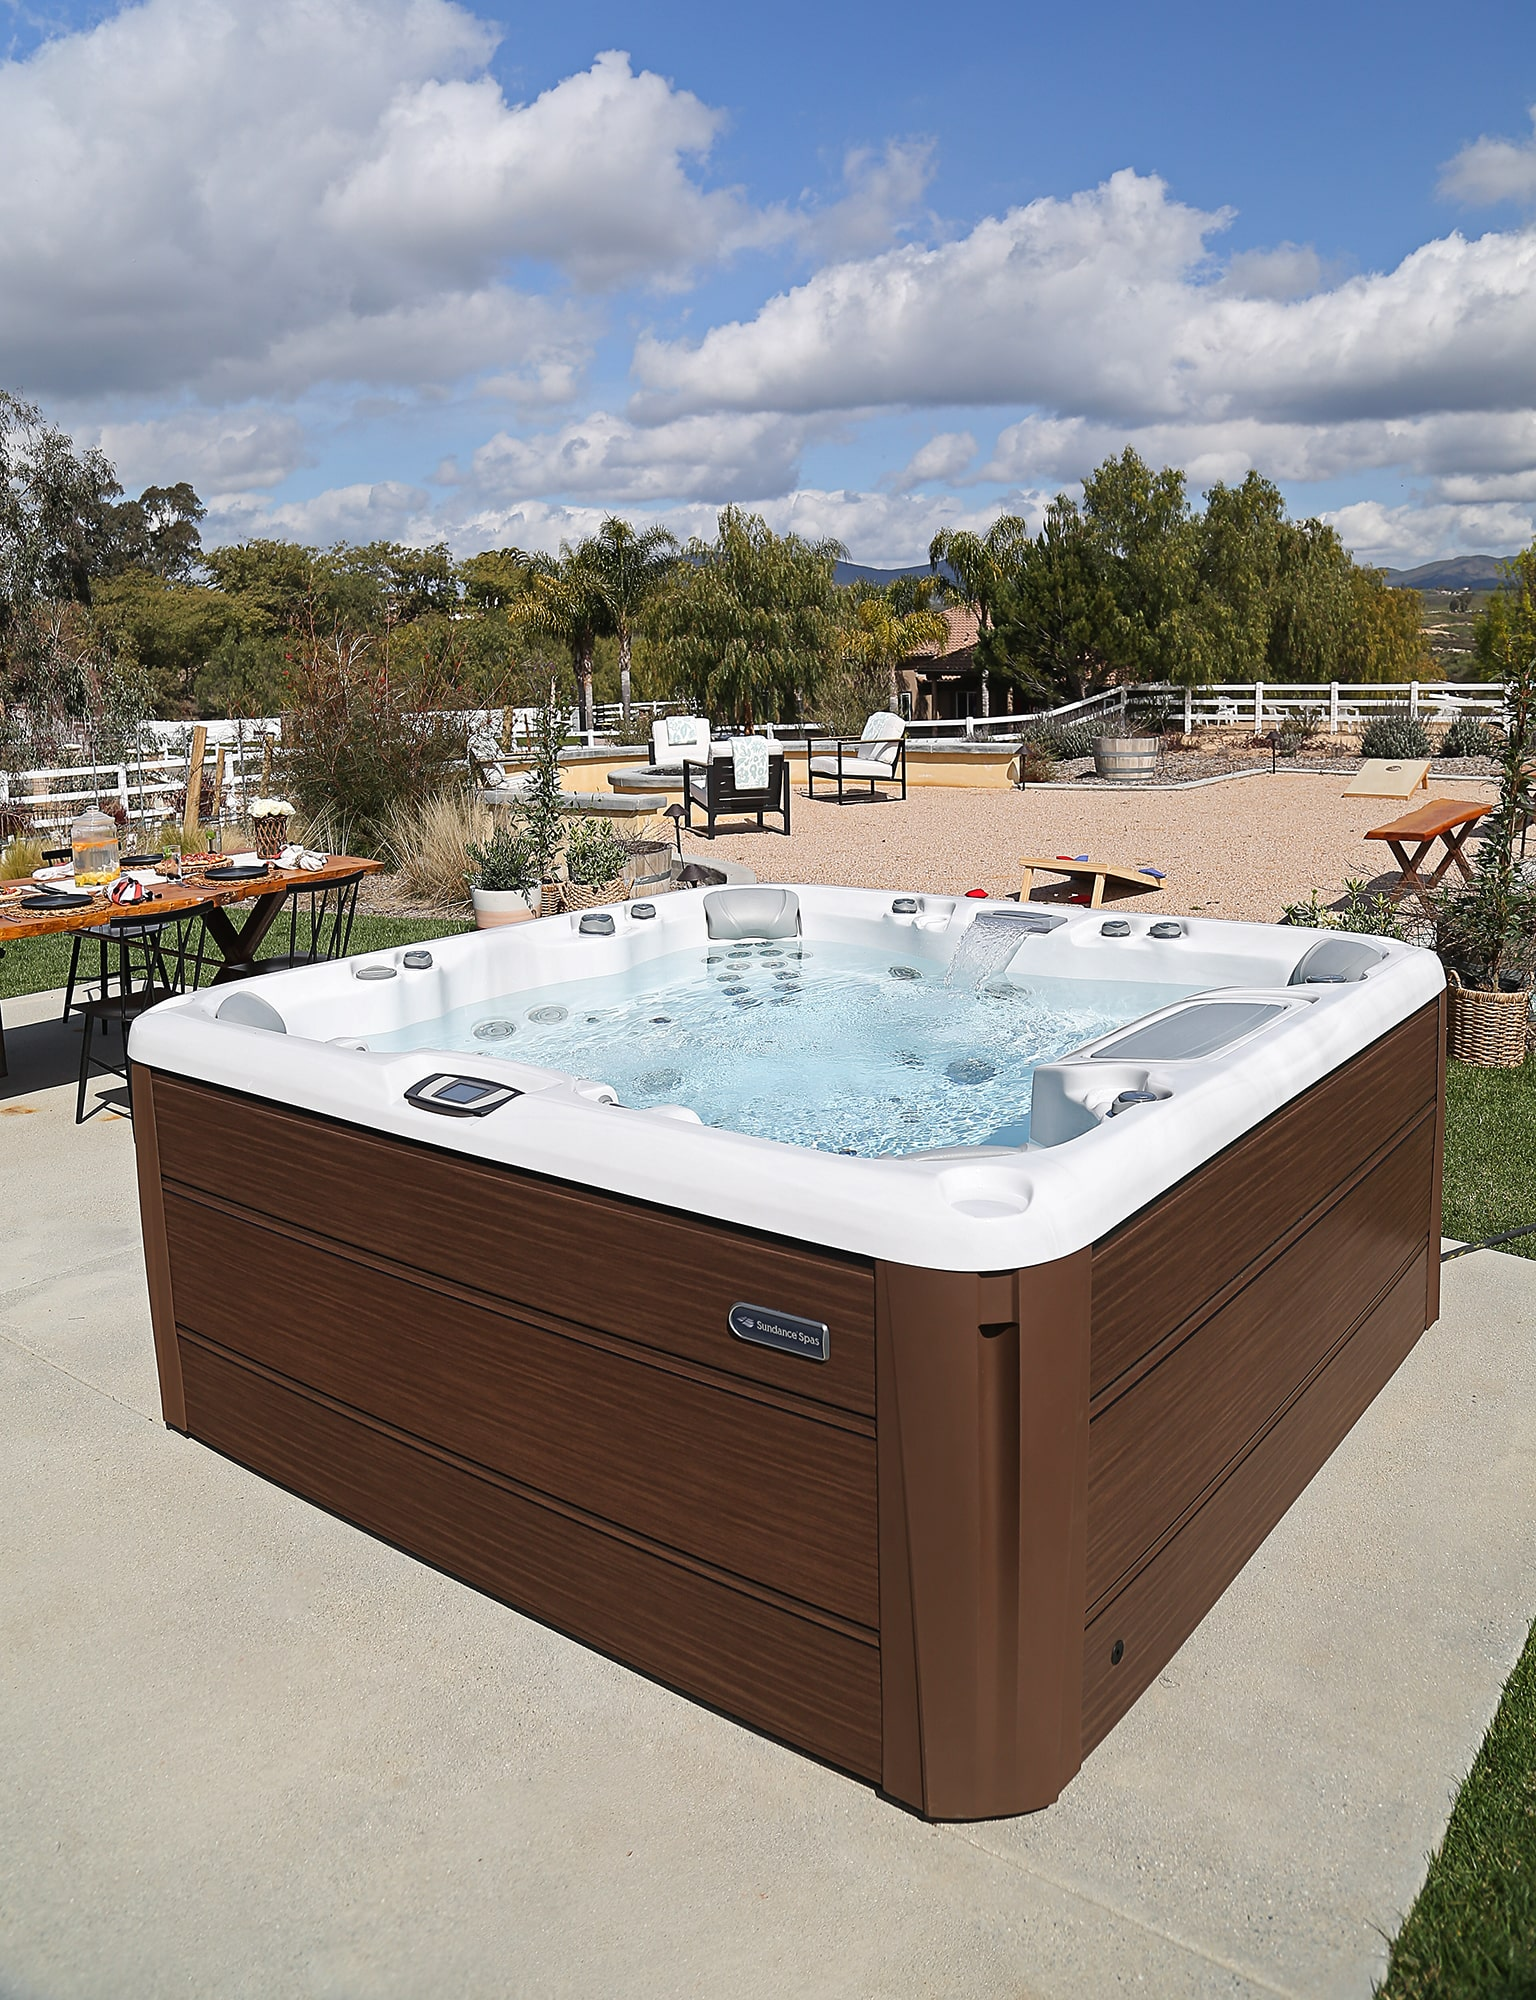 Sundance Spas hot tub installed into a rustic backyard living space